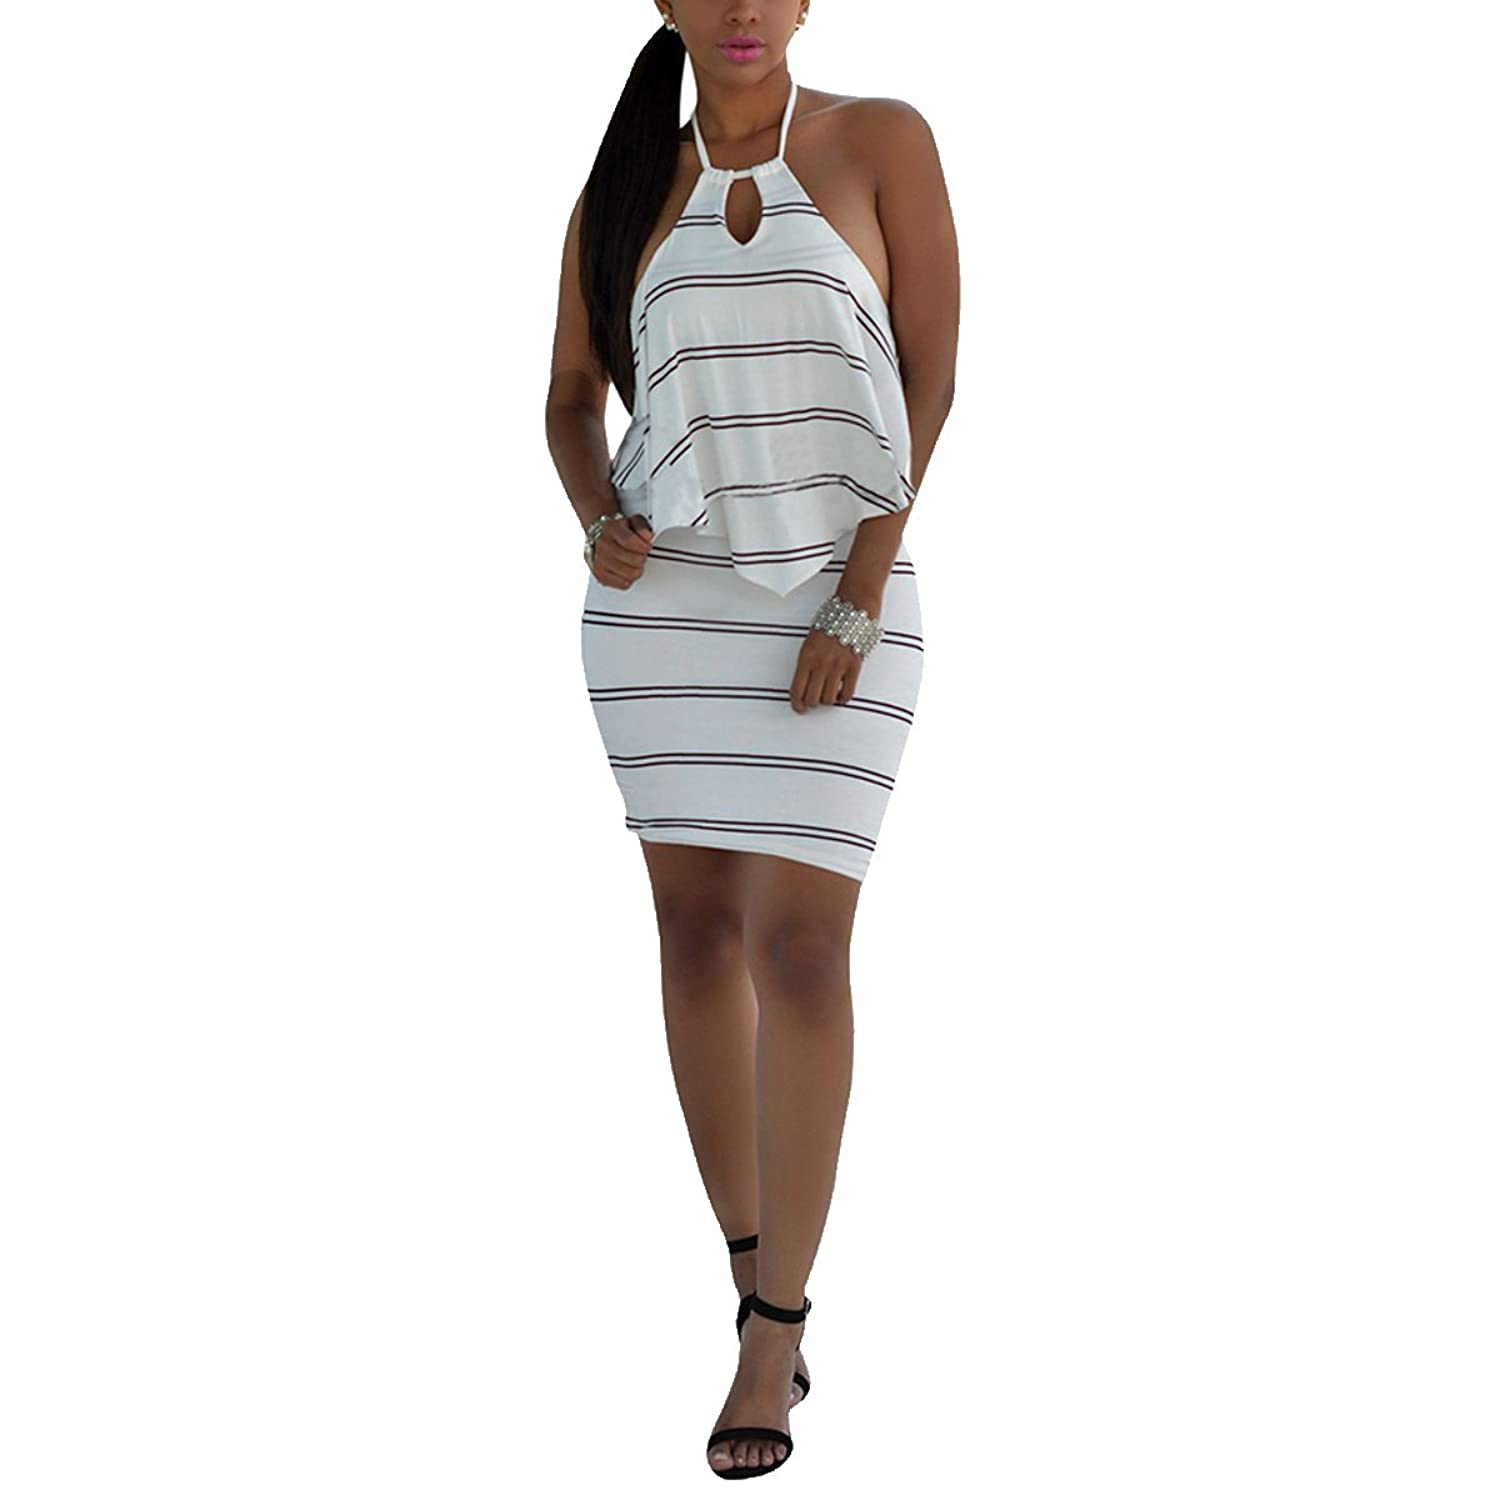 Womens Halter Stripes Sleeveless Backless Bodycon Party Club Mini Dress